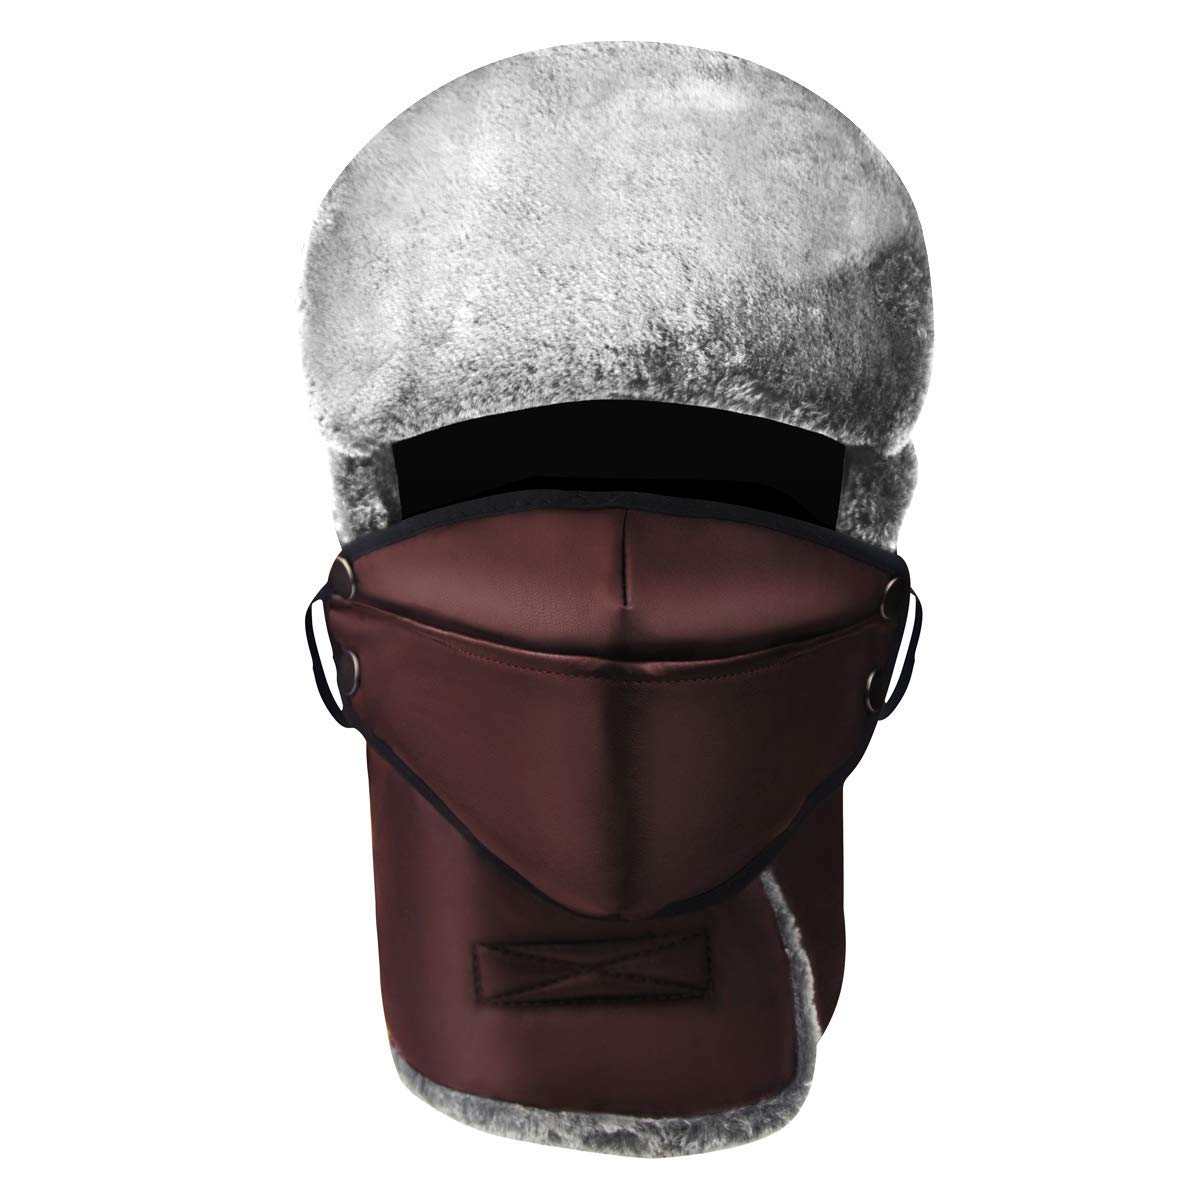 7c16f7a151c Get Quotations · MOOKZZ Winter Trapper Fur Hat